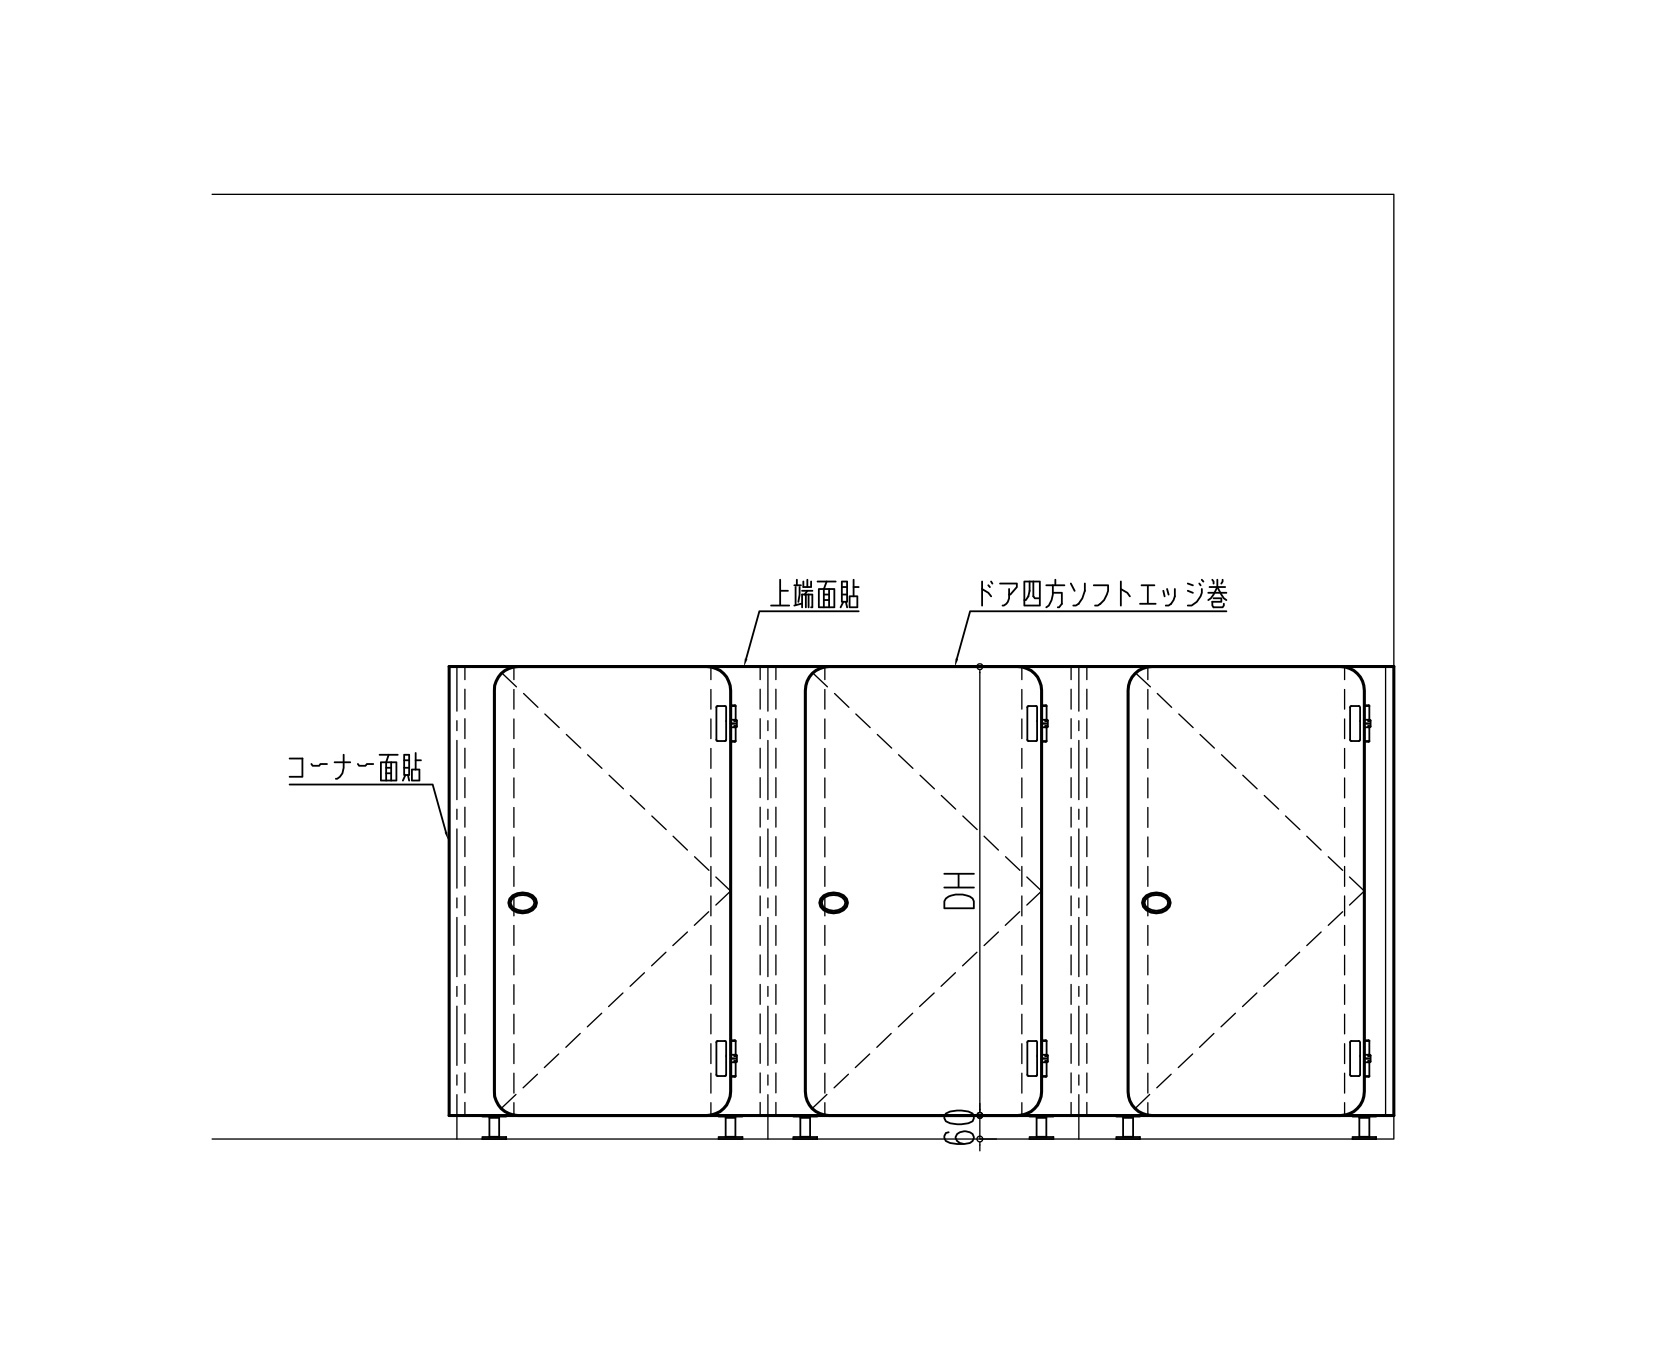 Hydrostatic Transaxle Eaton 850 additionally Cycleparts3 together with Hydrostatic Transaxle Eaton 850 furthermore Index likewise Restroom Partitions Harborcitysupply. on index 40h